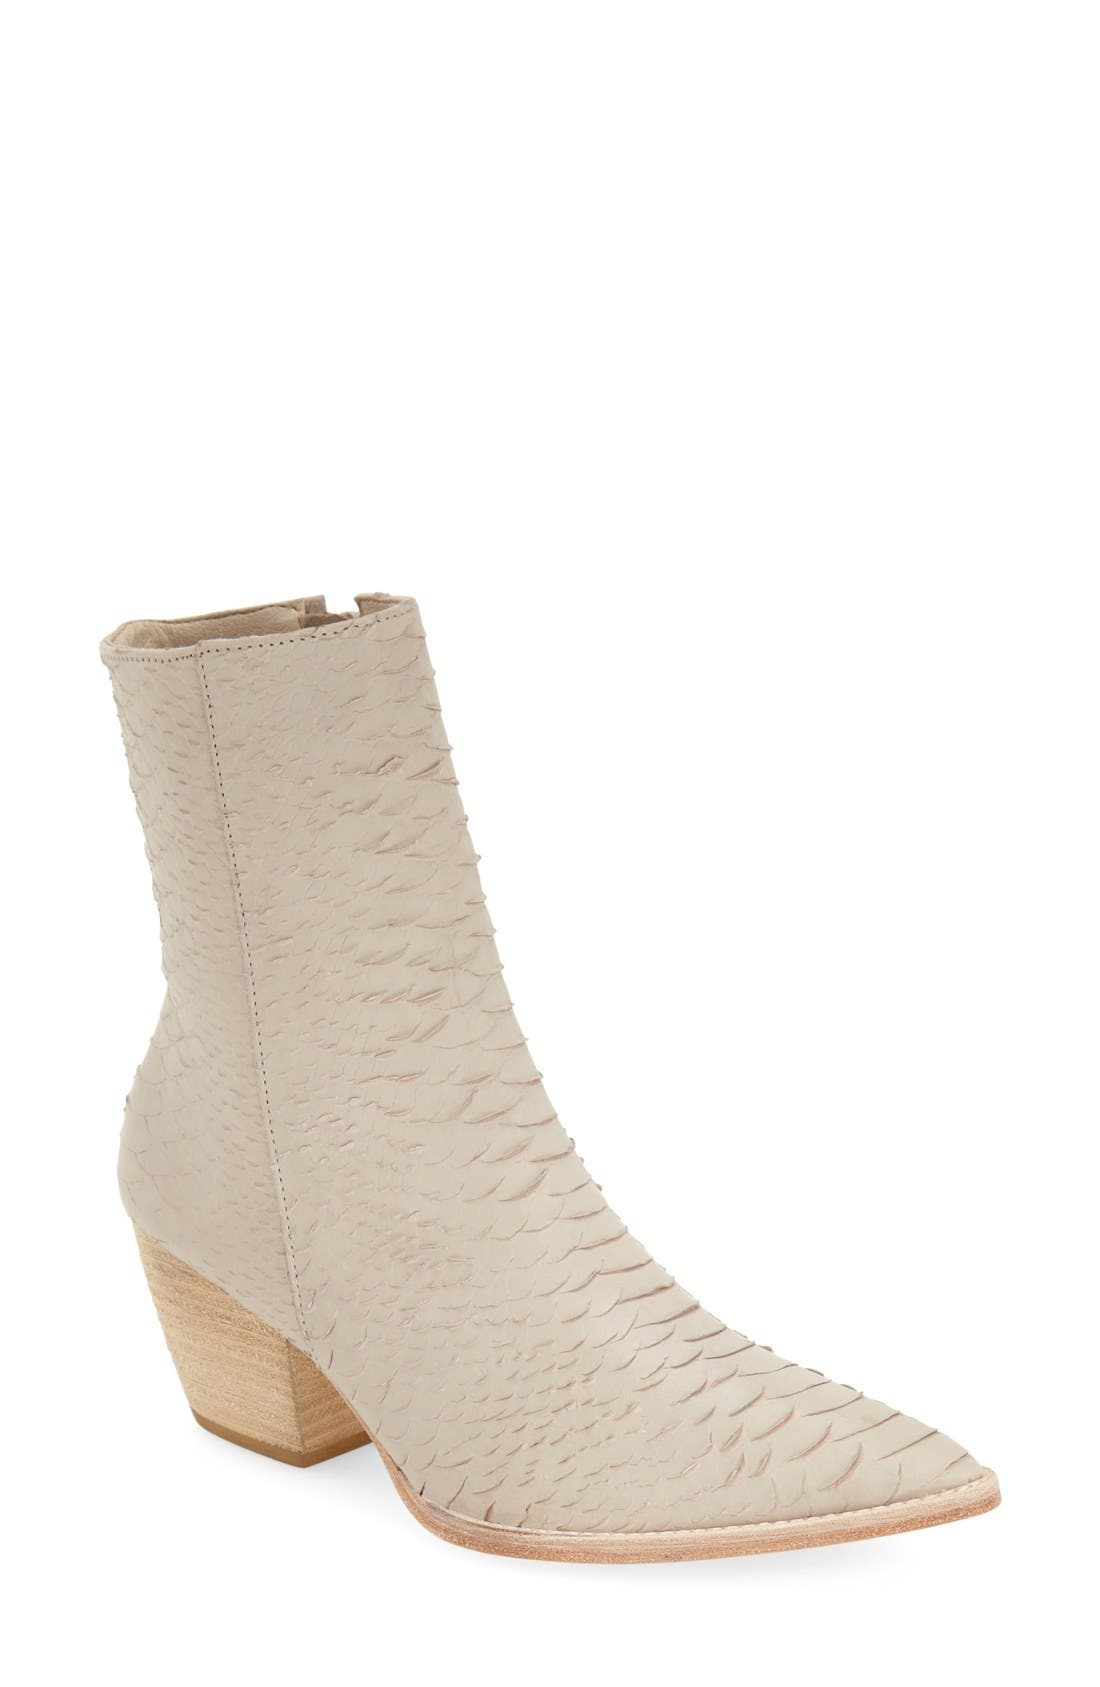 Matisse Caty Western Pointy Toe Bootie, White (Nordstrom Exclusive)